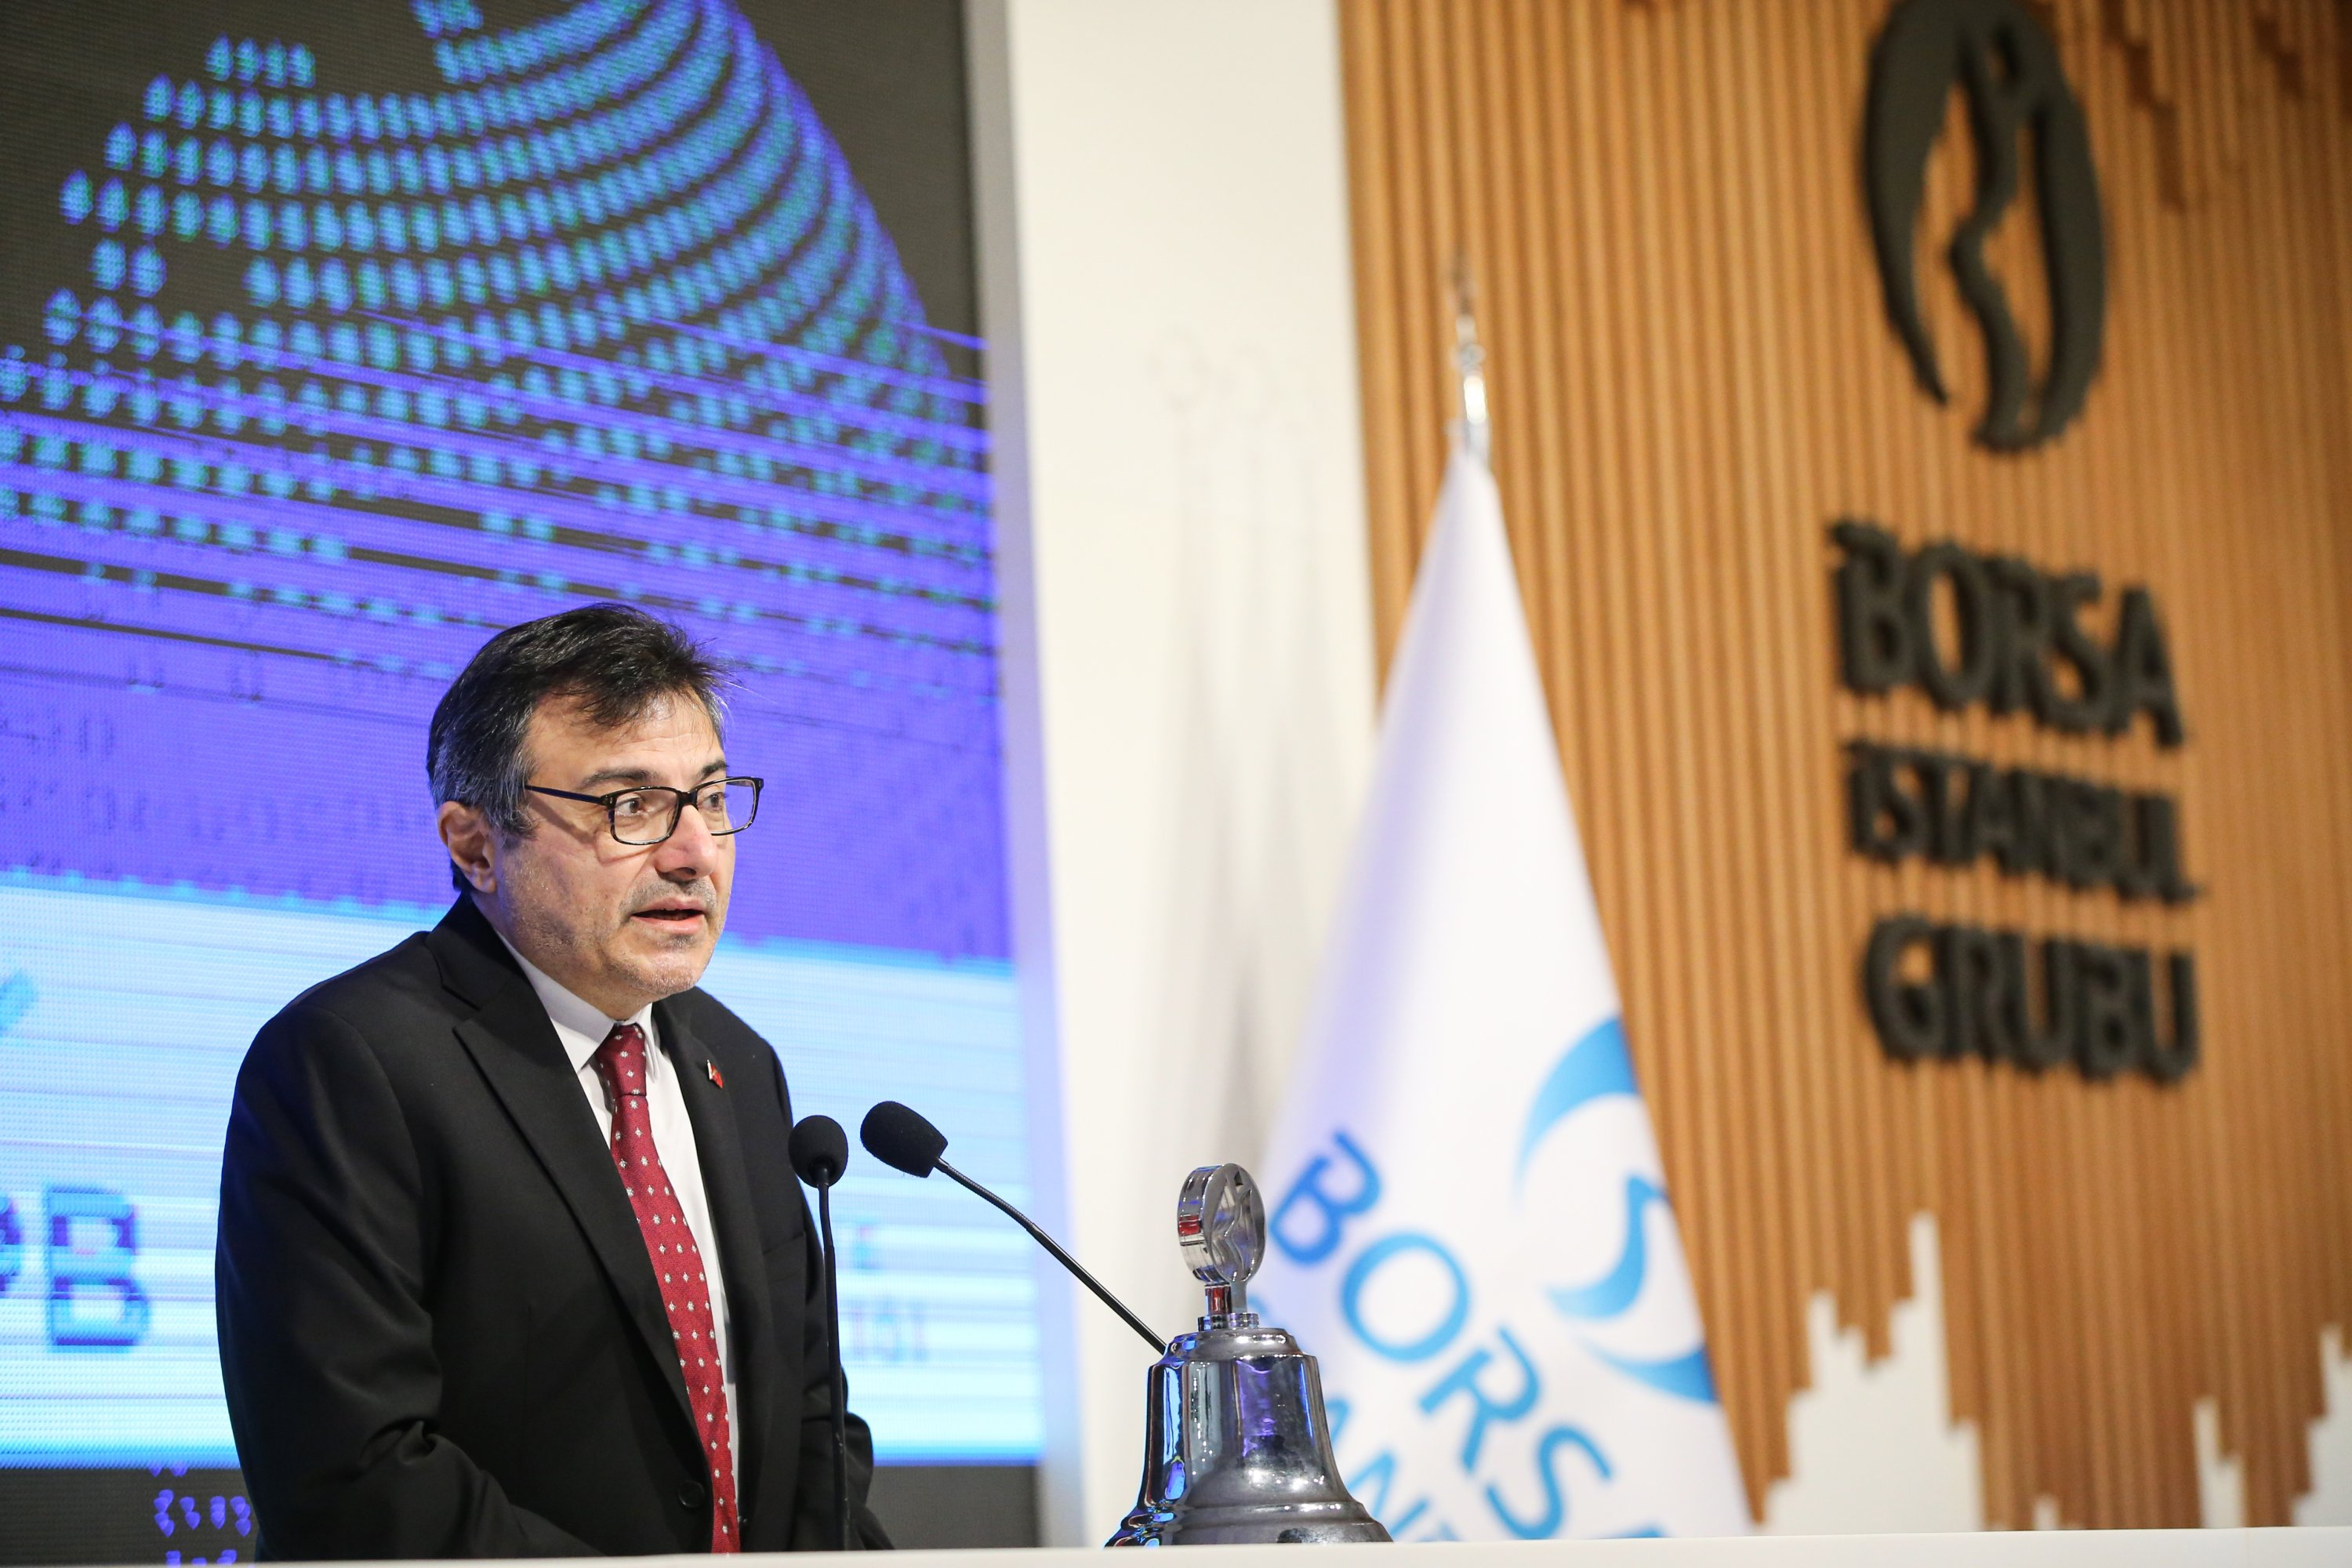 Turkey focused on upgrading non-banking segment of finance sector, senior official says thumbnail